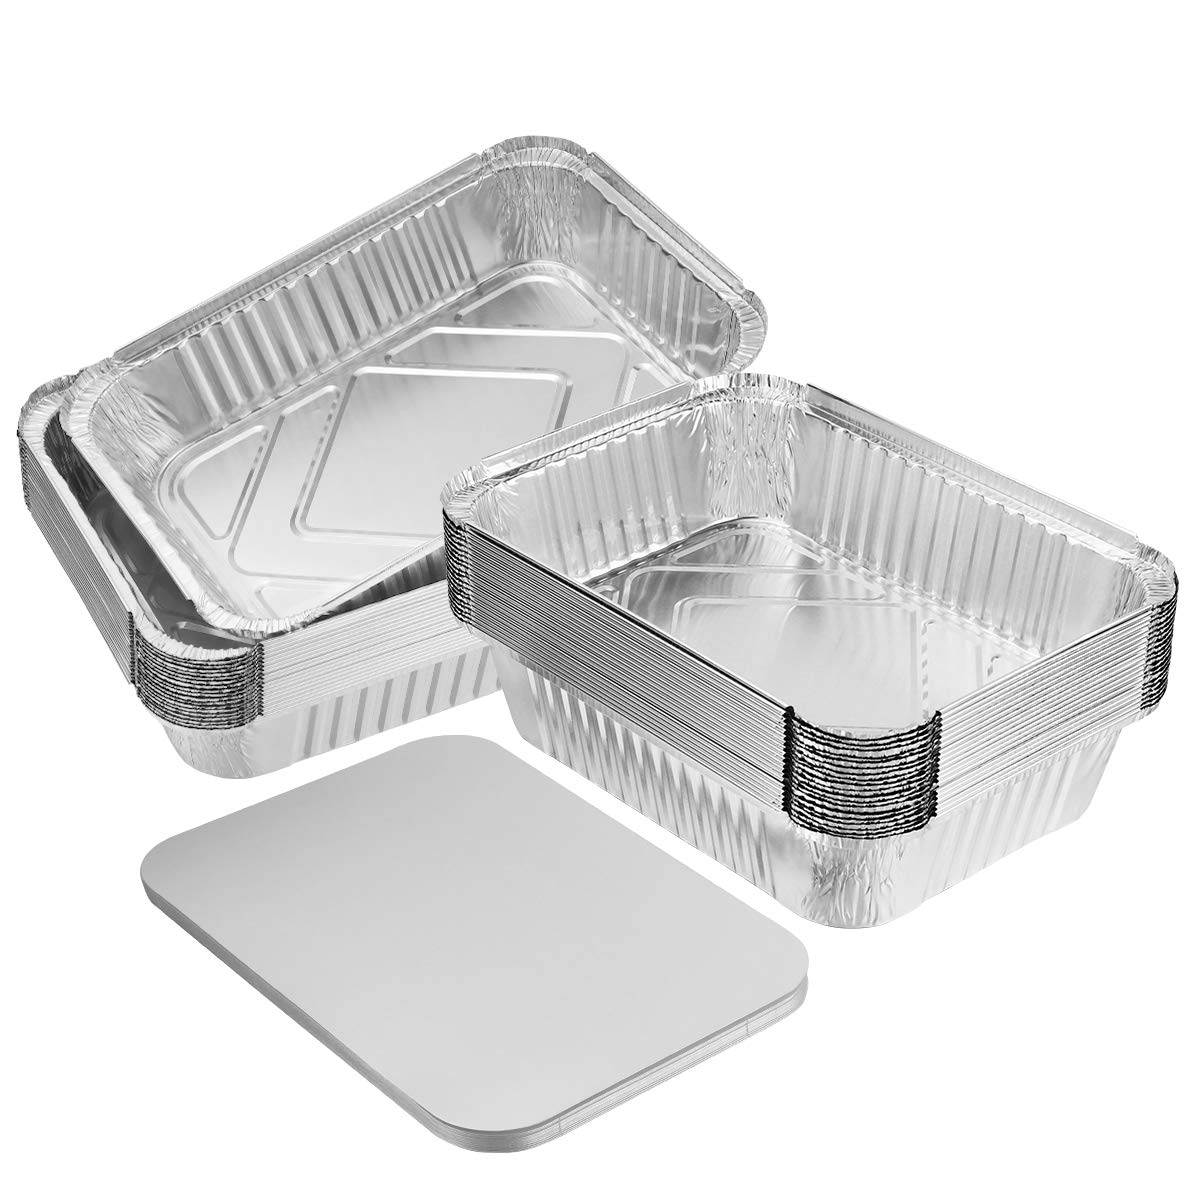 "BESTONZON 20PCS Heavy Duty Thicker Aluminum Foil Pans With Board Lids for Cooking, Roasting, Baking - 10"" X 7.5"" X 2.5"""